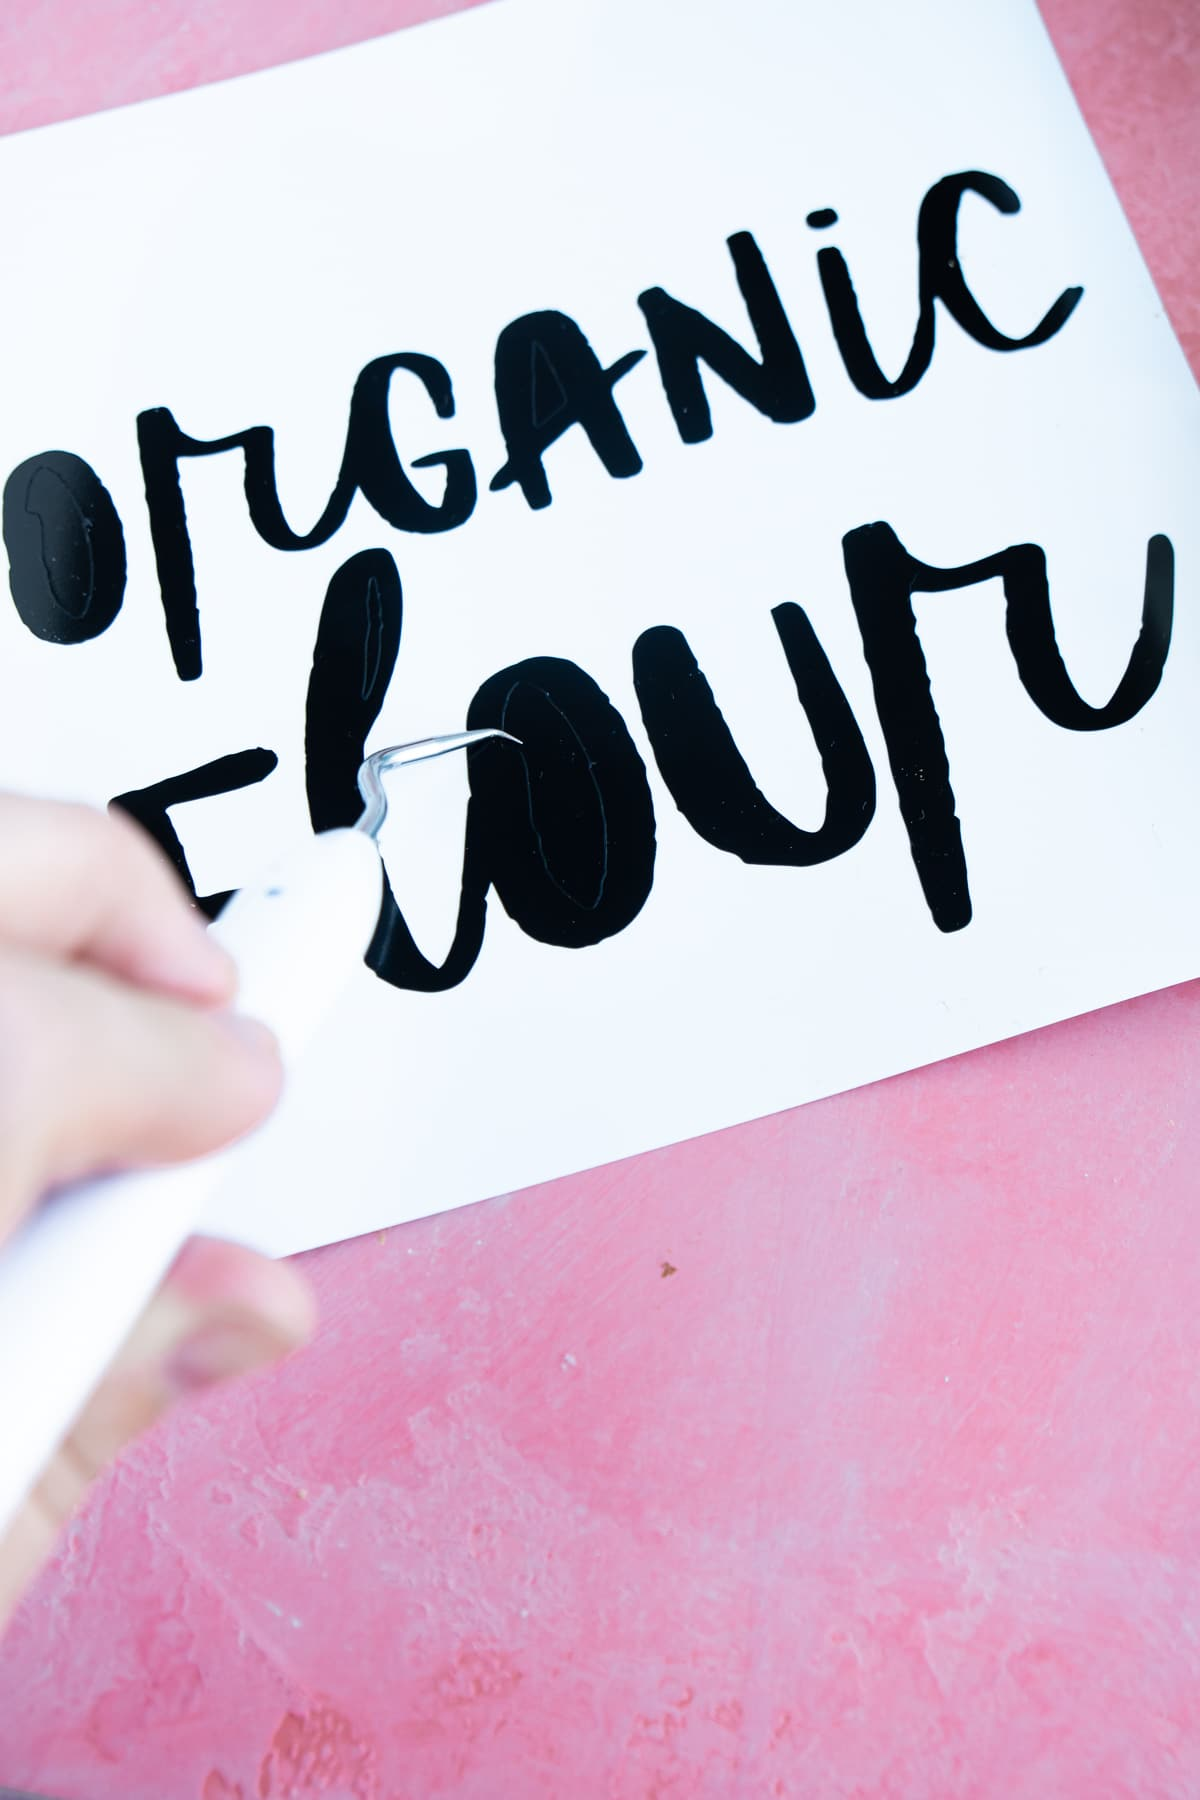 Organic flour vinyl label with a woman's hand holding a weeder